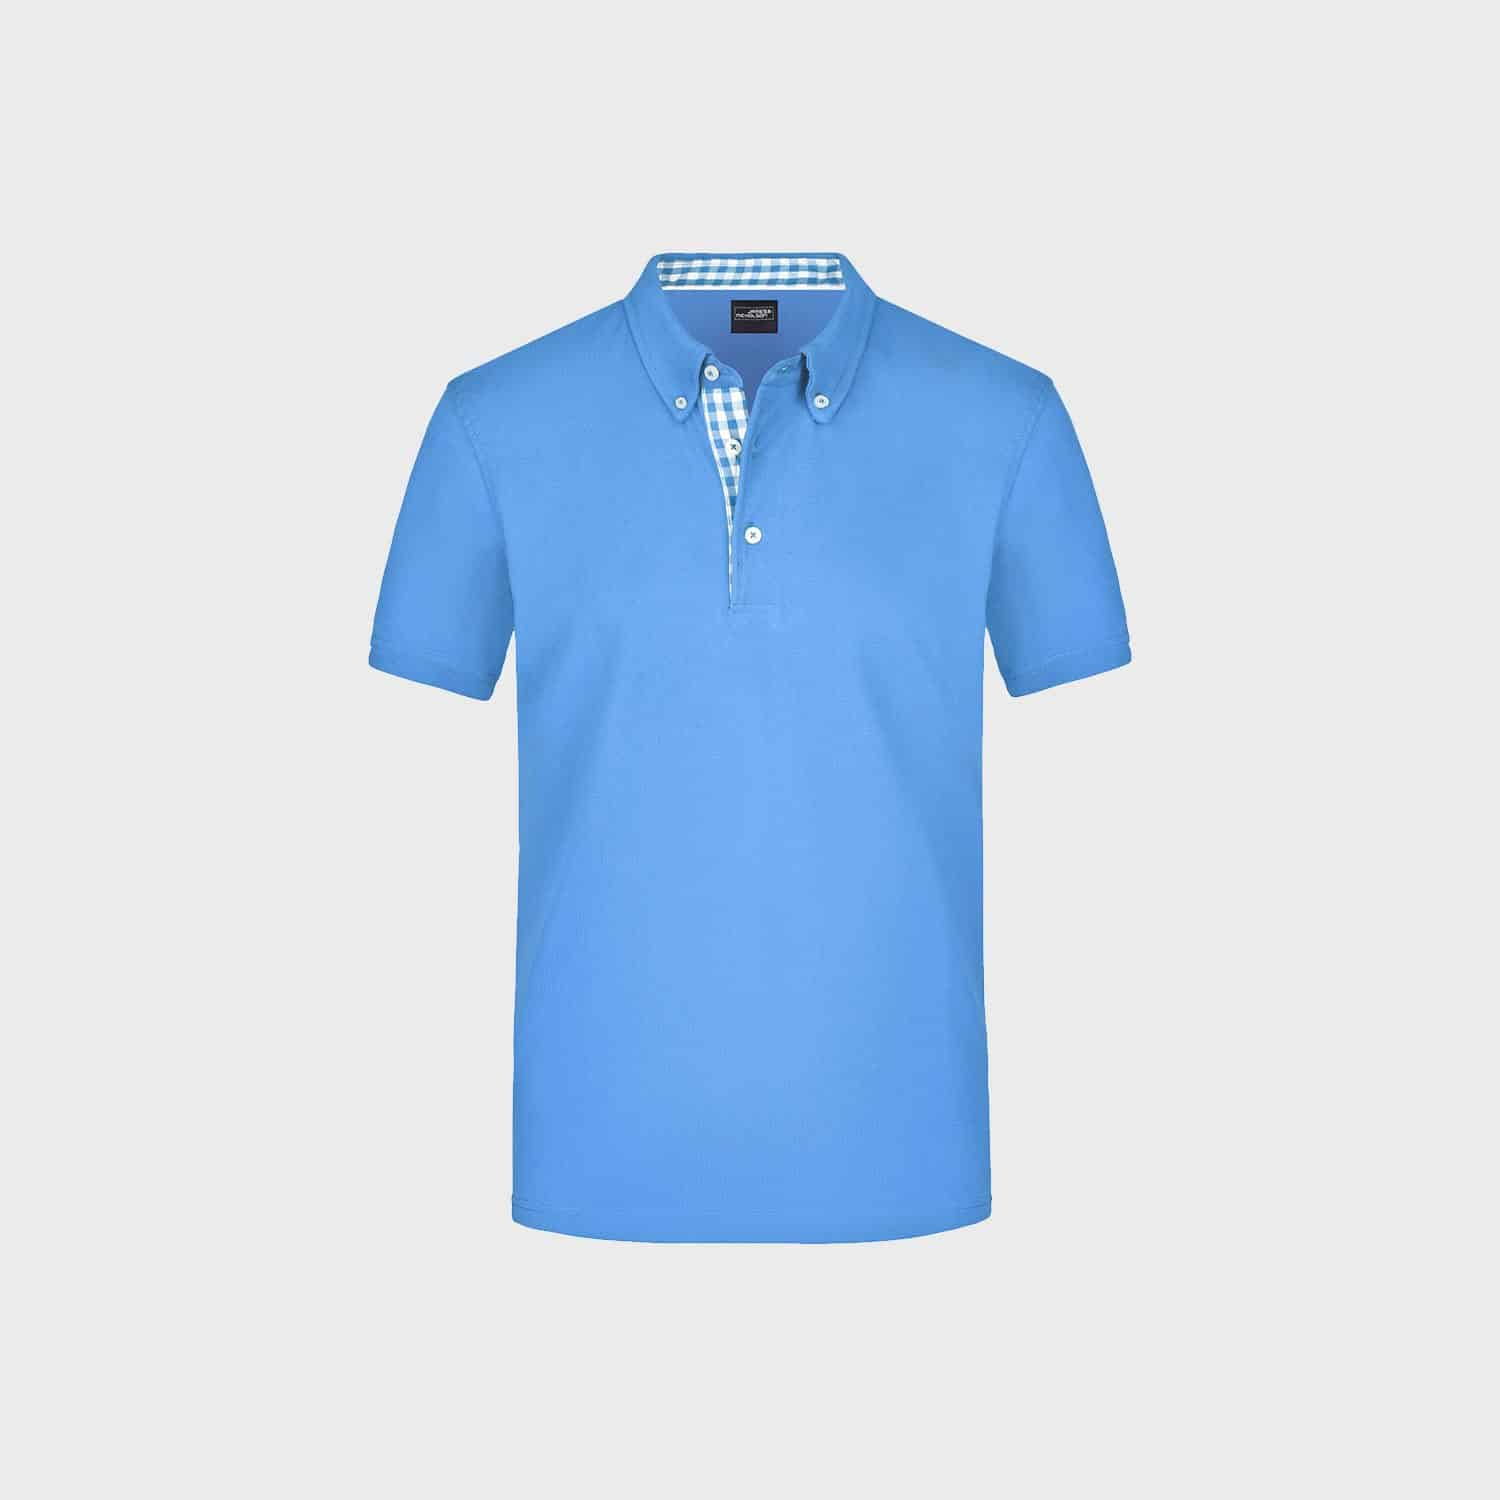 plain-polo-t-shirt-button-down-herren-glacierblue-glacierblue-white-kaufen-besticken_stickmanufaktur